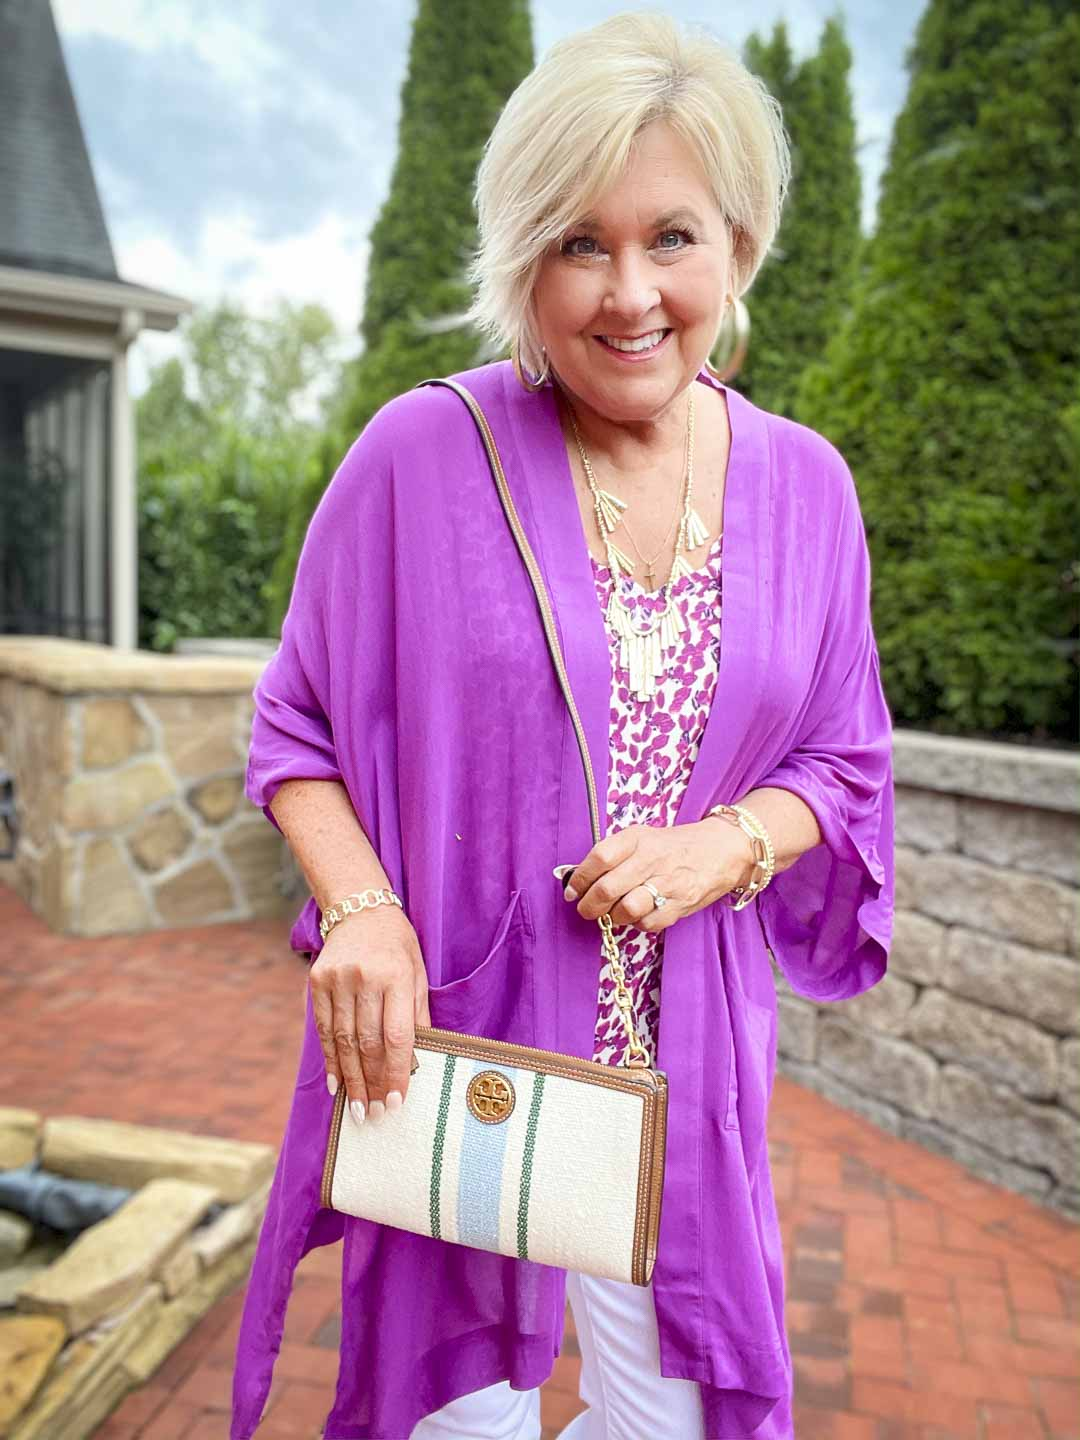 Over 40 fashion blogger, Tania Stephens is wearing a purple cardigan with a printed camisole and holding a Tory Burch crossbody